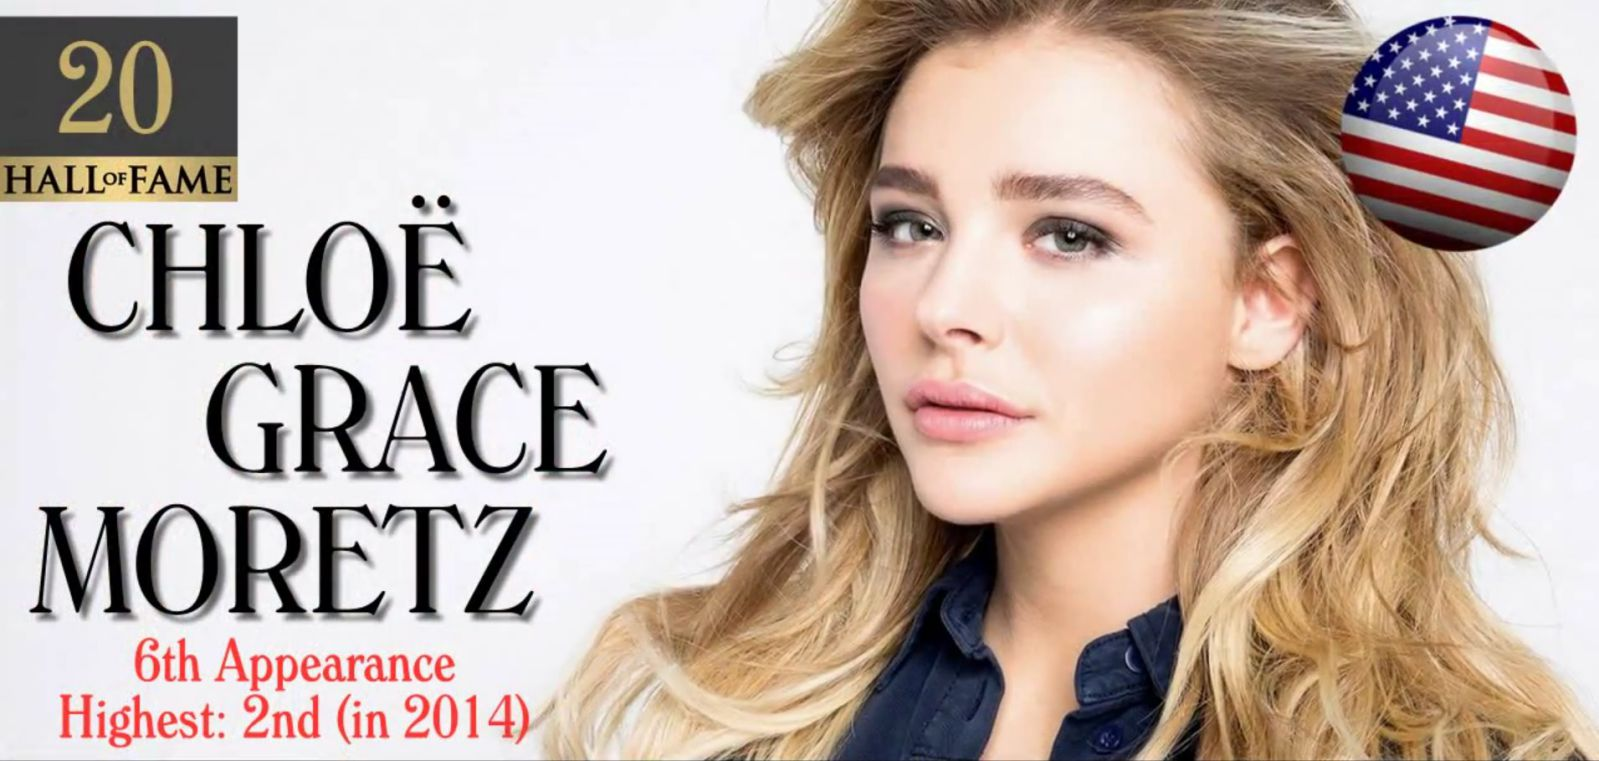 the-100-most-beautiful-faces-2016 (20)s